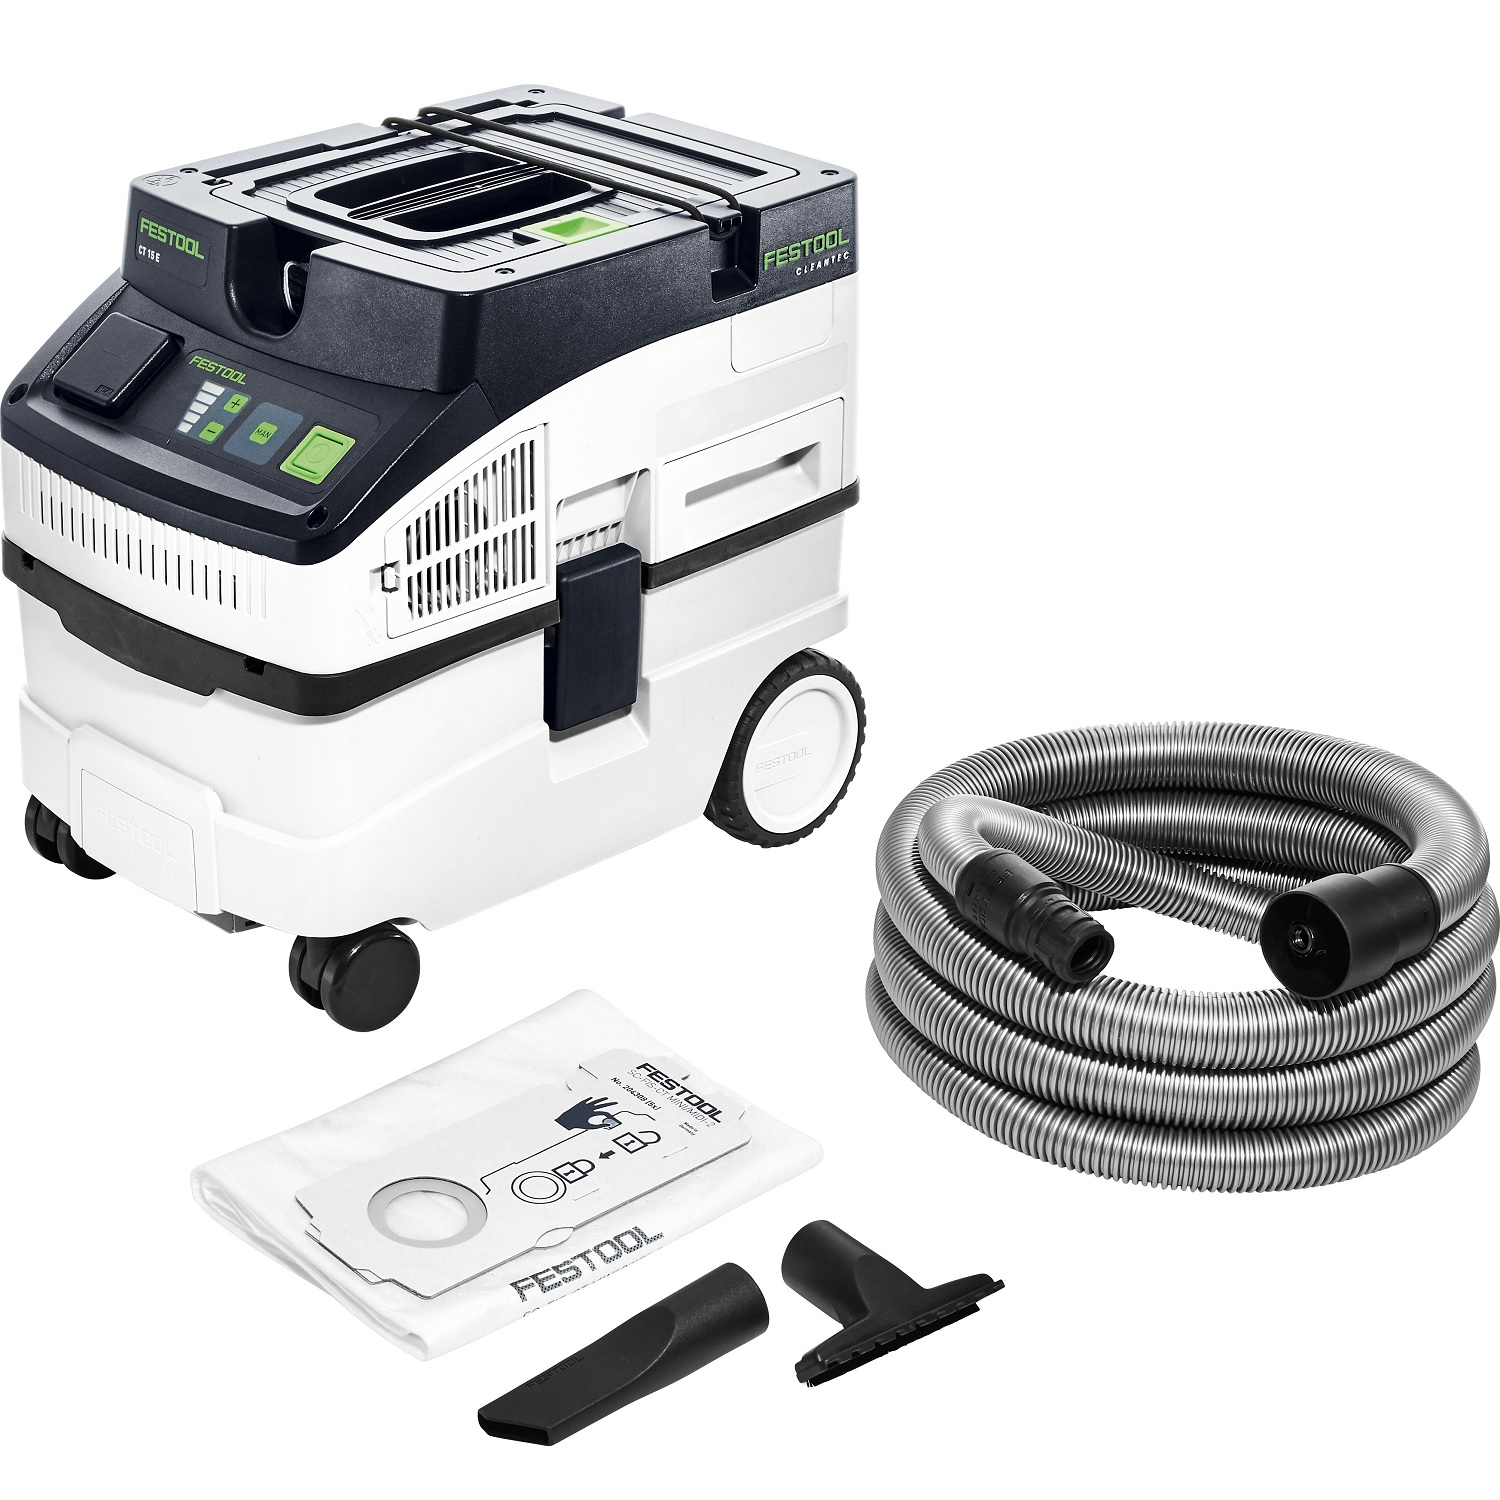 Festool CT15 Dust Exctractor